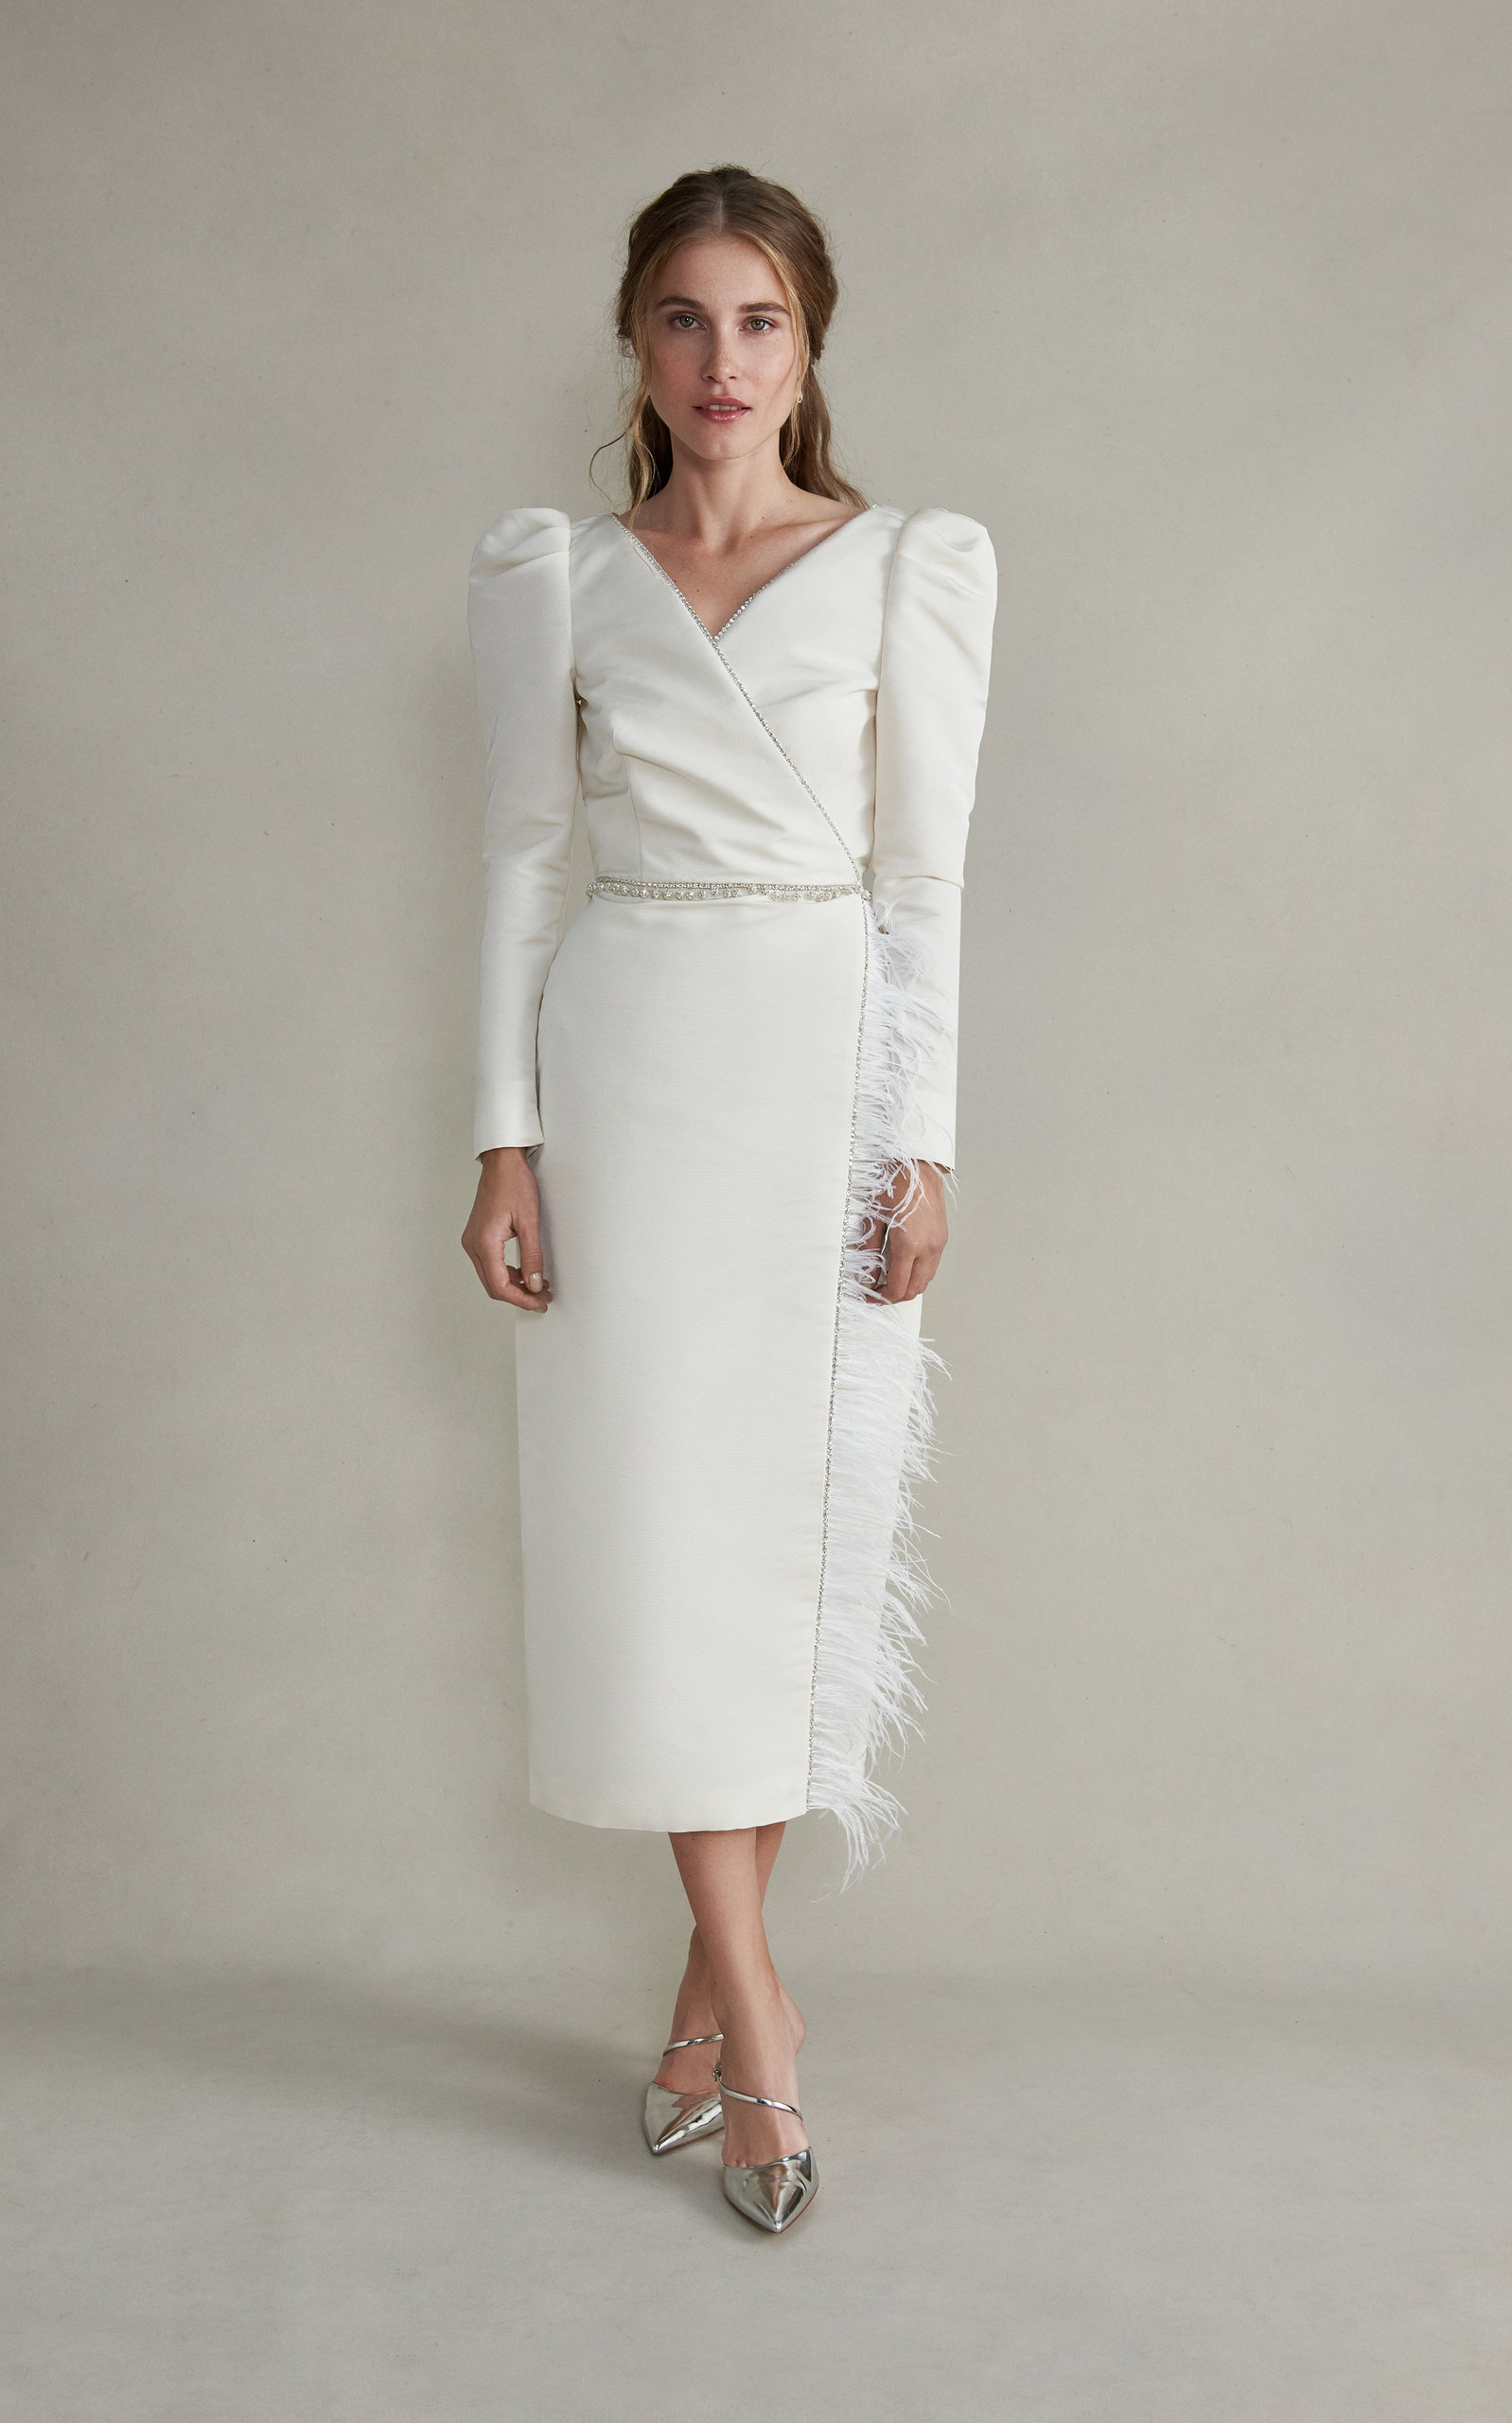 MARKARIAN Artemis Midi Sleeved Silk Crossover Dress With Feathers in White